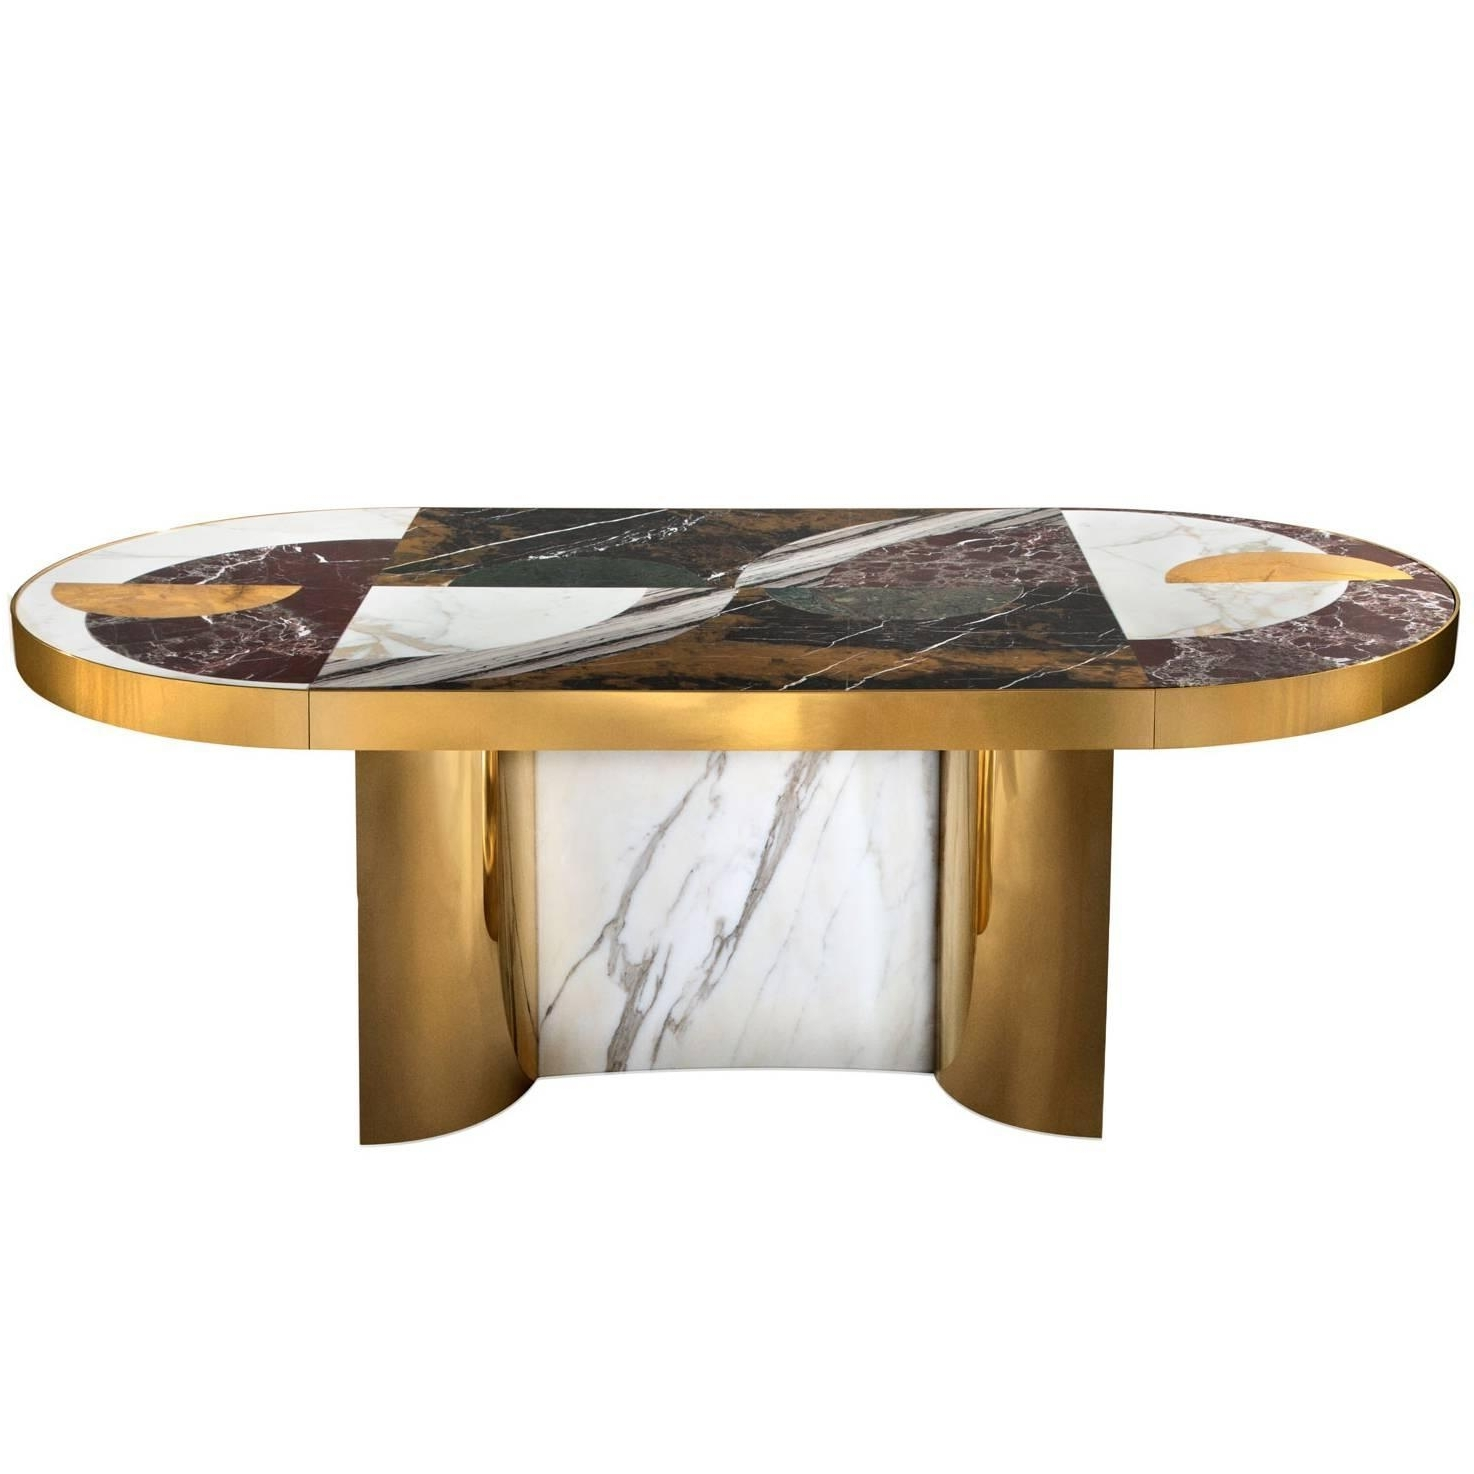 "Half Moon"" Marble And Brass Or Gold Plated Dining Table Designed With Recent Round Half Moon Dining Tables (View 15 of 25)"